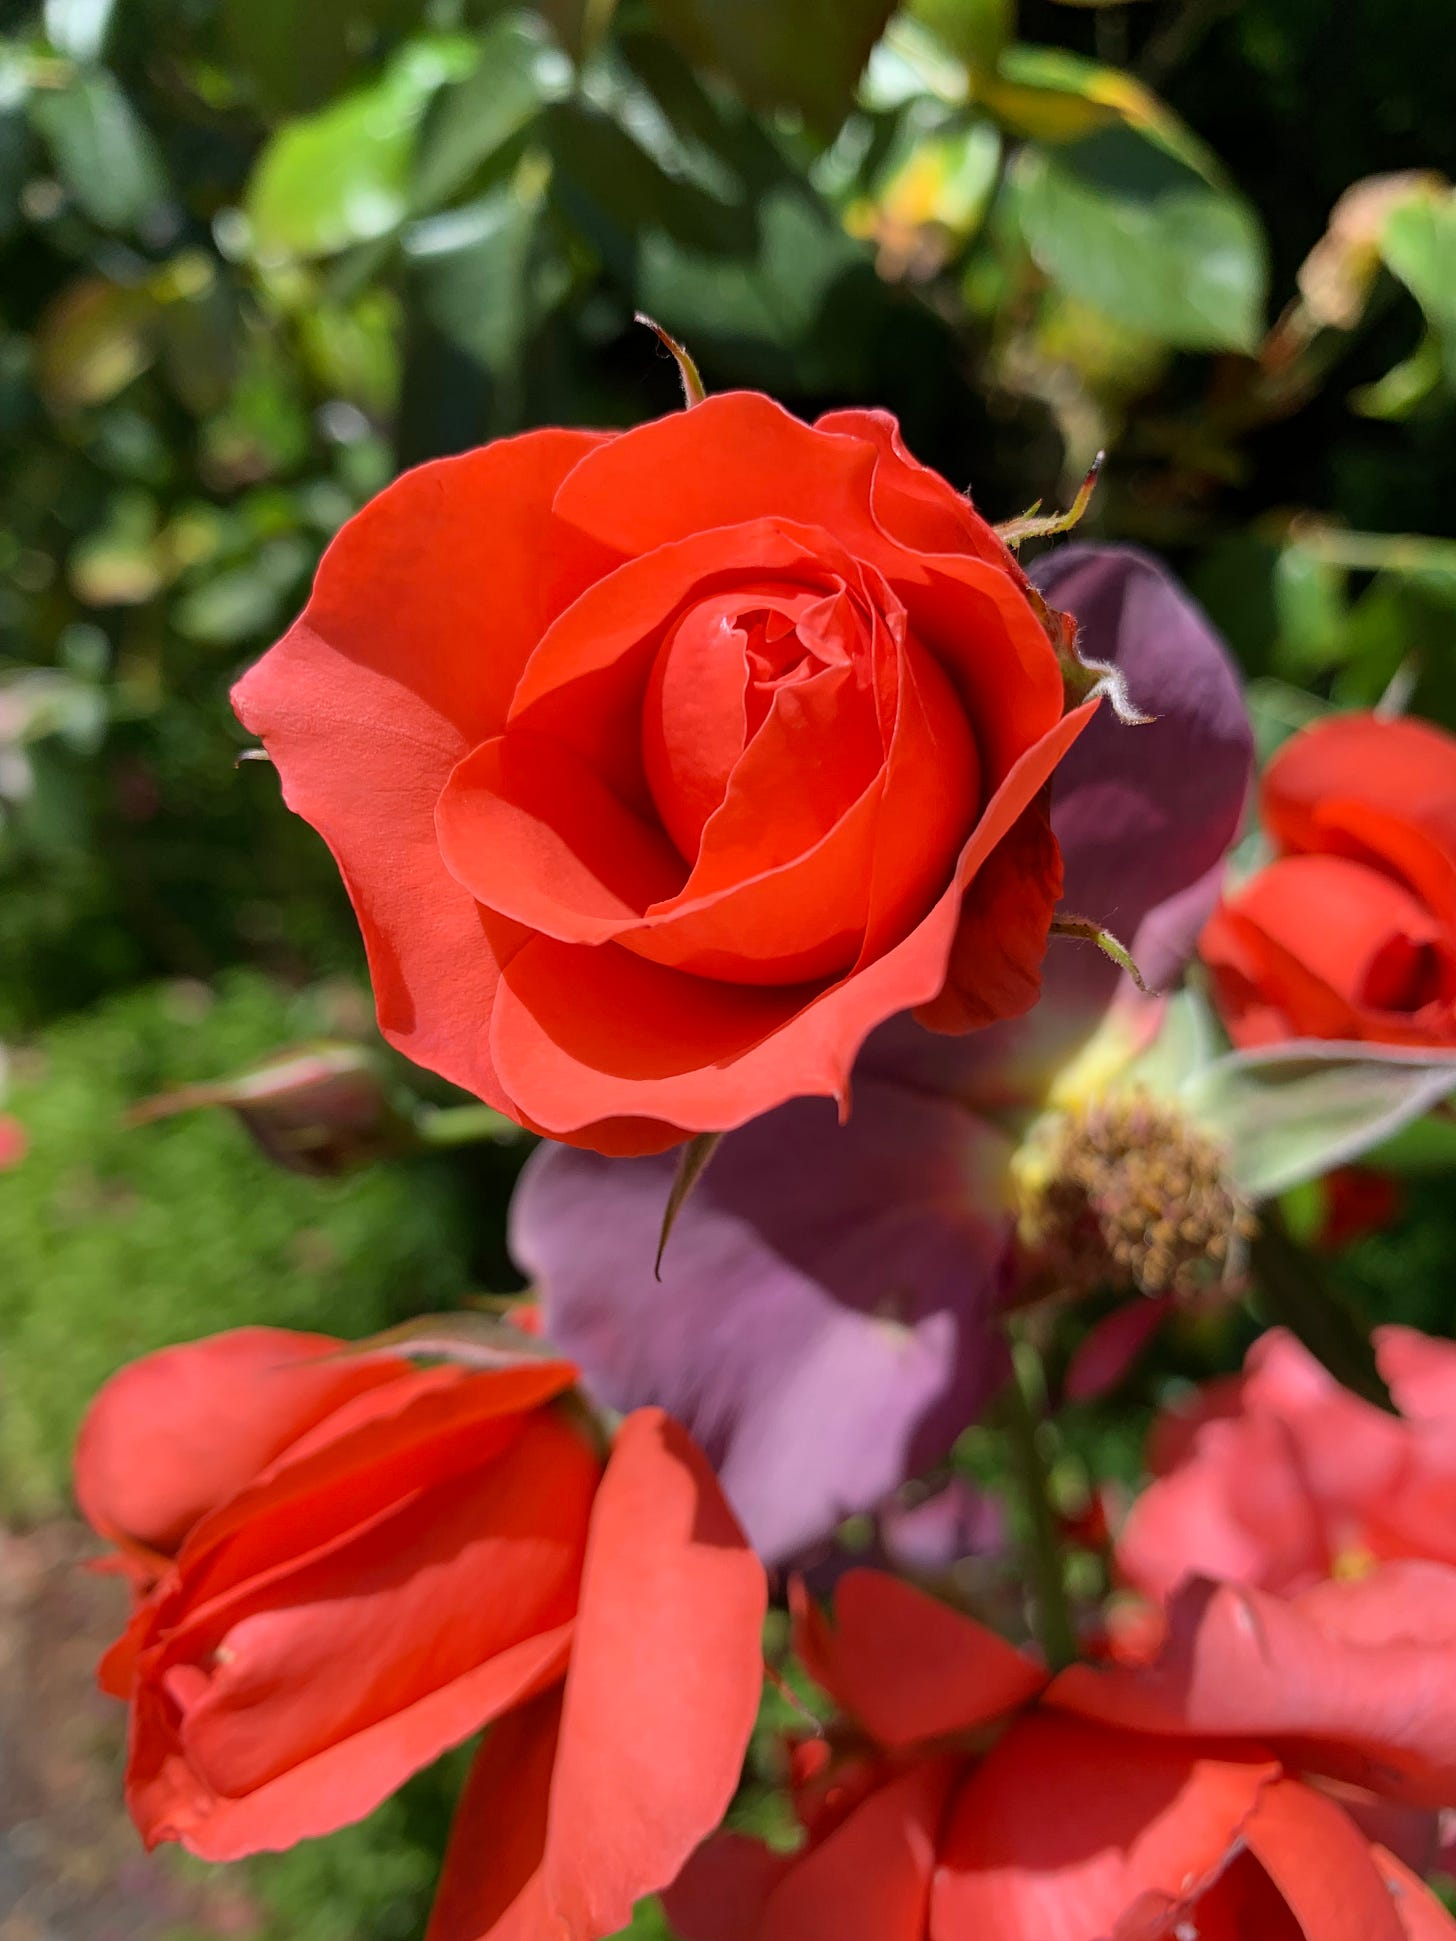 A red rose blooms against a green background.